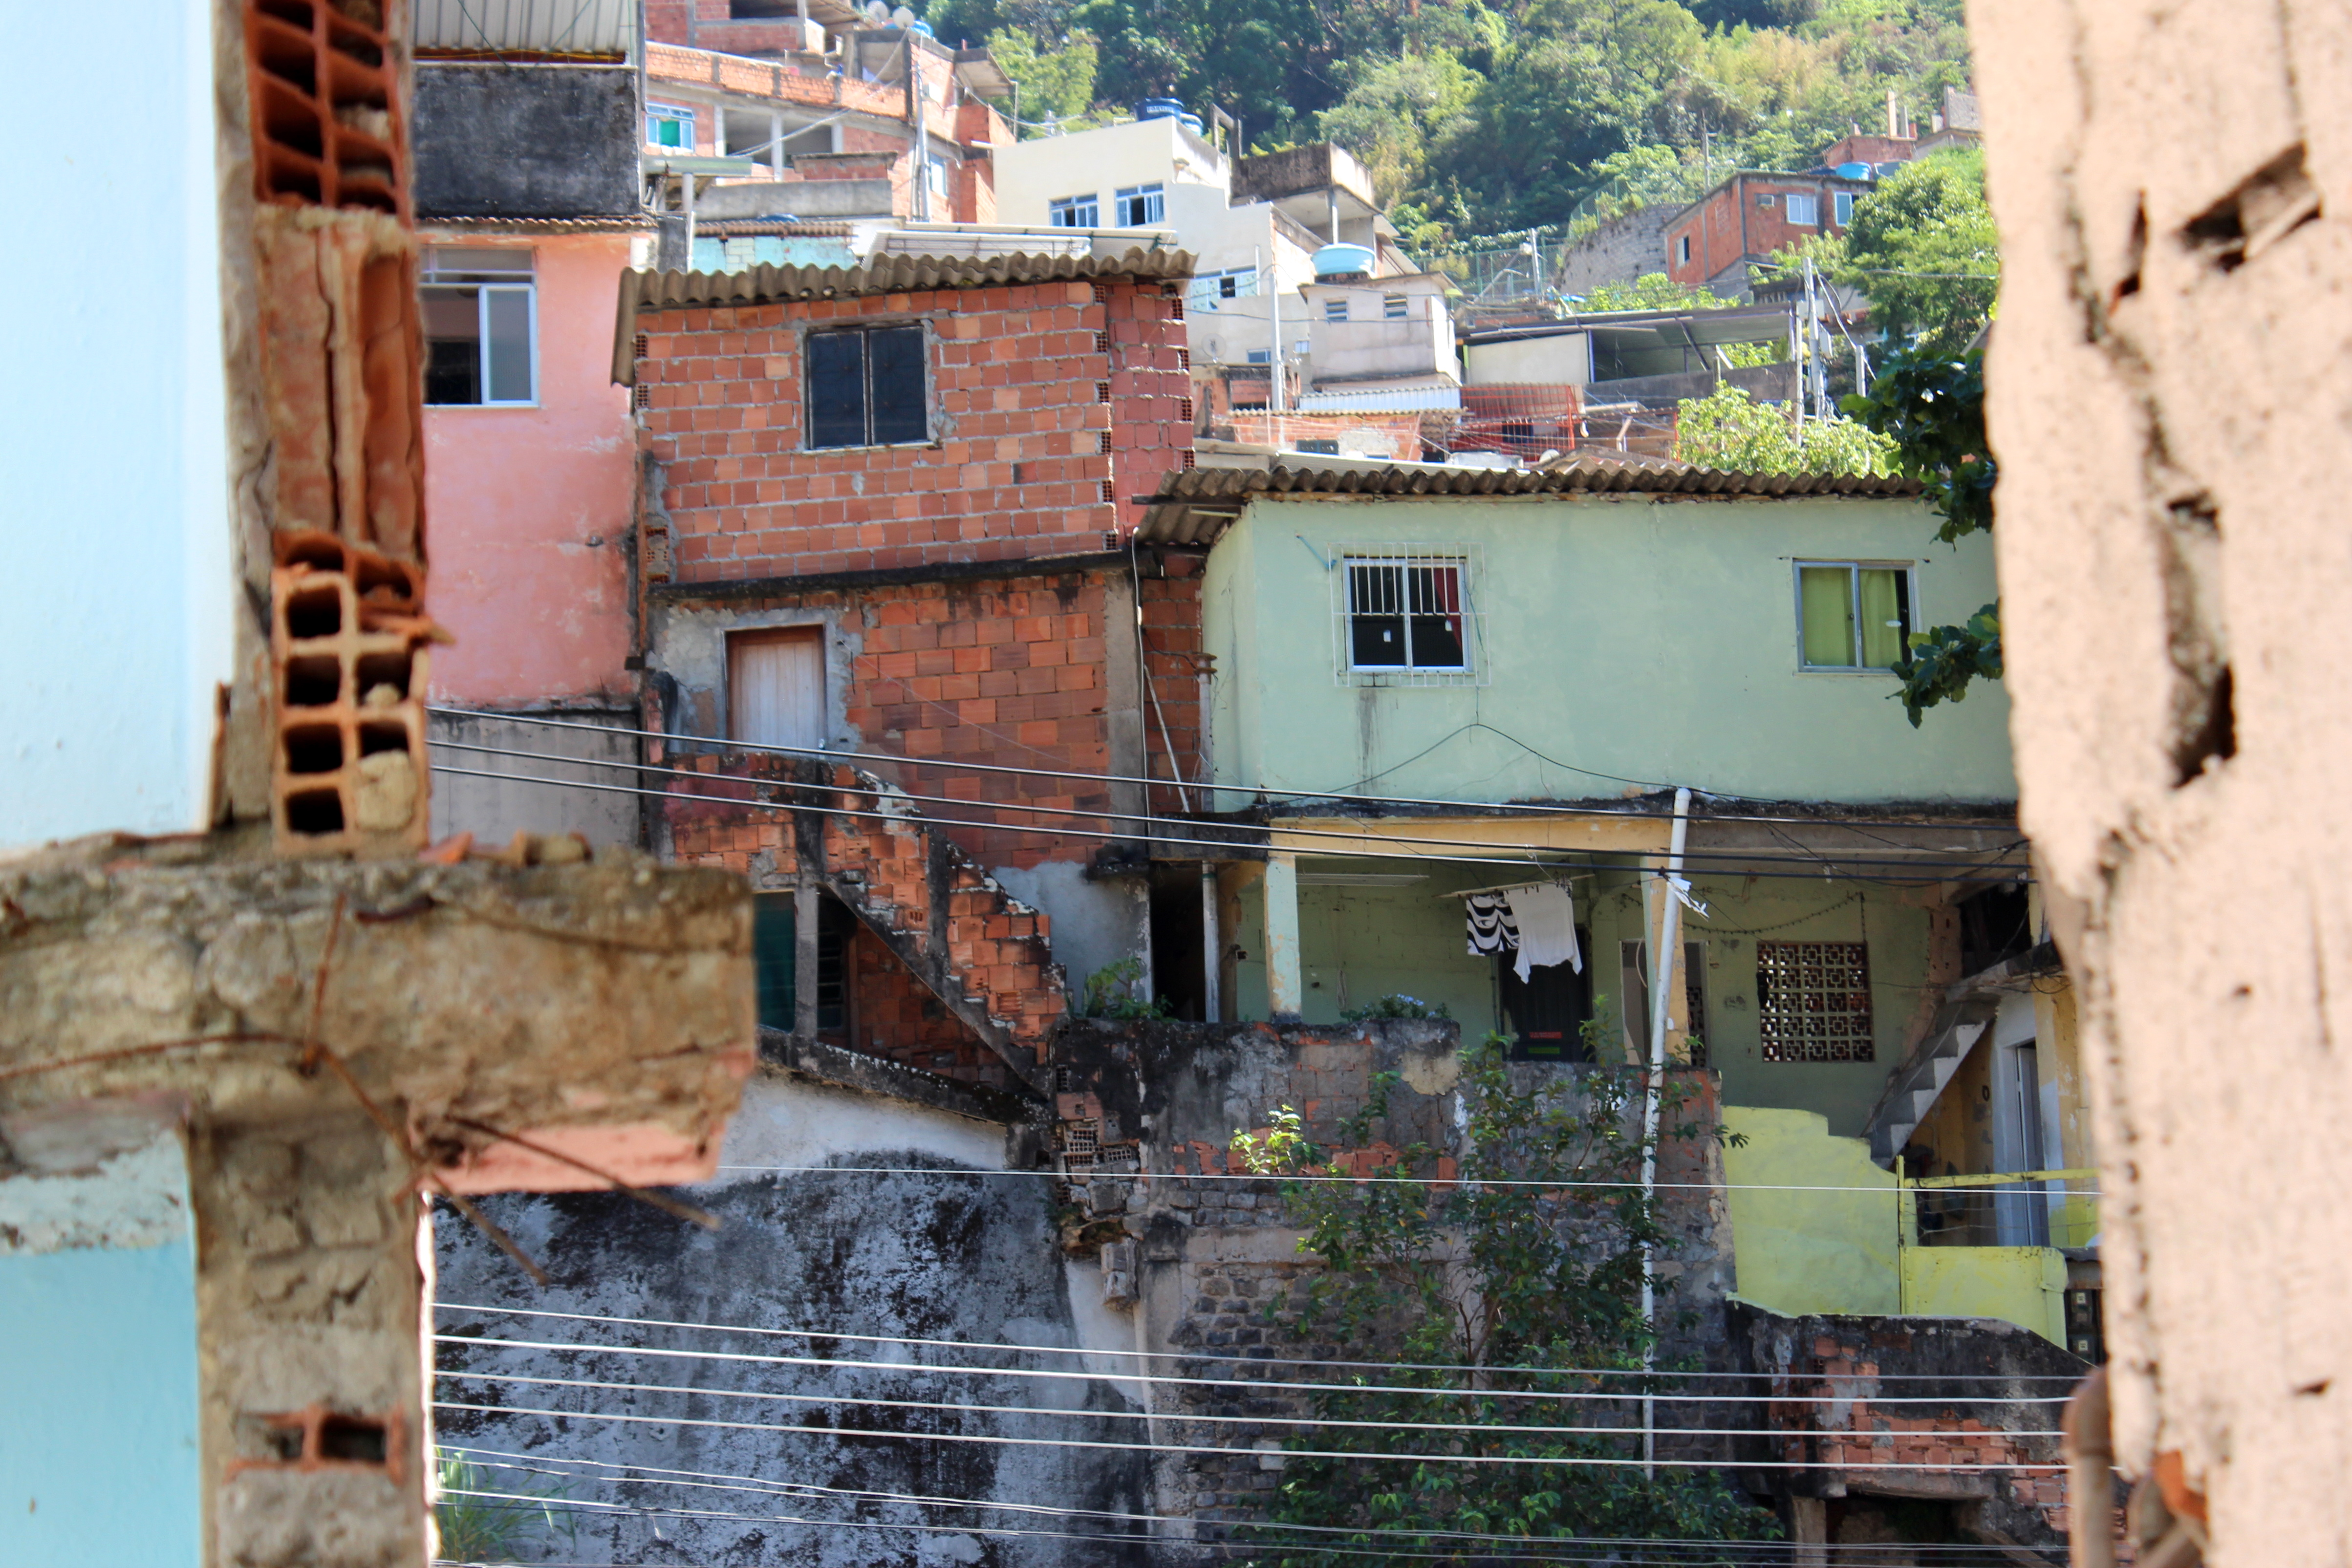 favelas essay Collaborative essay, we draw from personal experience, legal expertise, and   law students to visit favelas, and account for the significant.